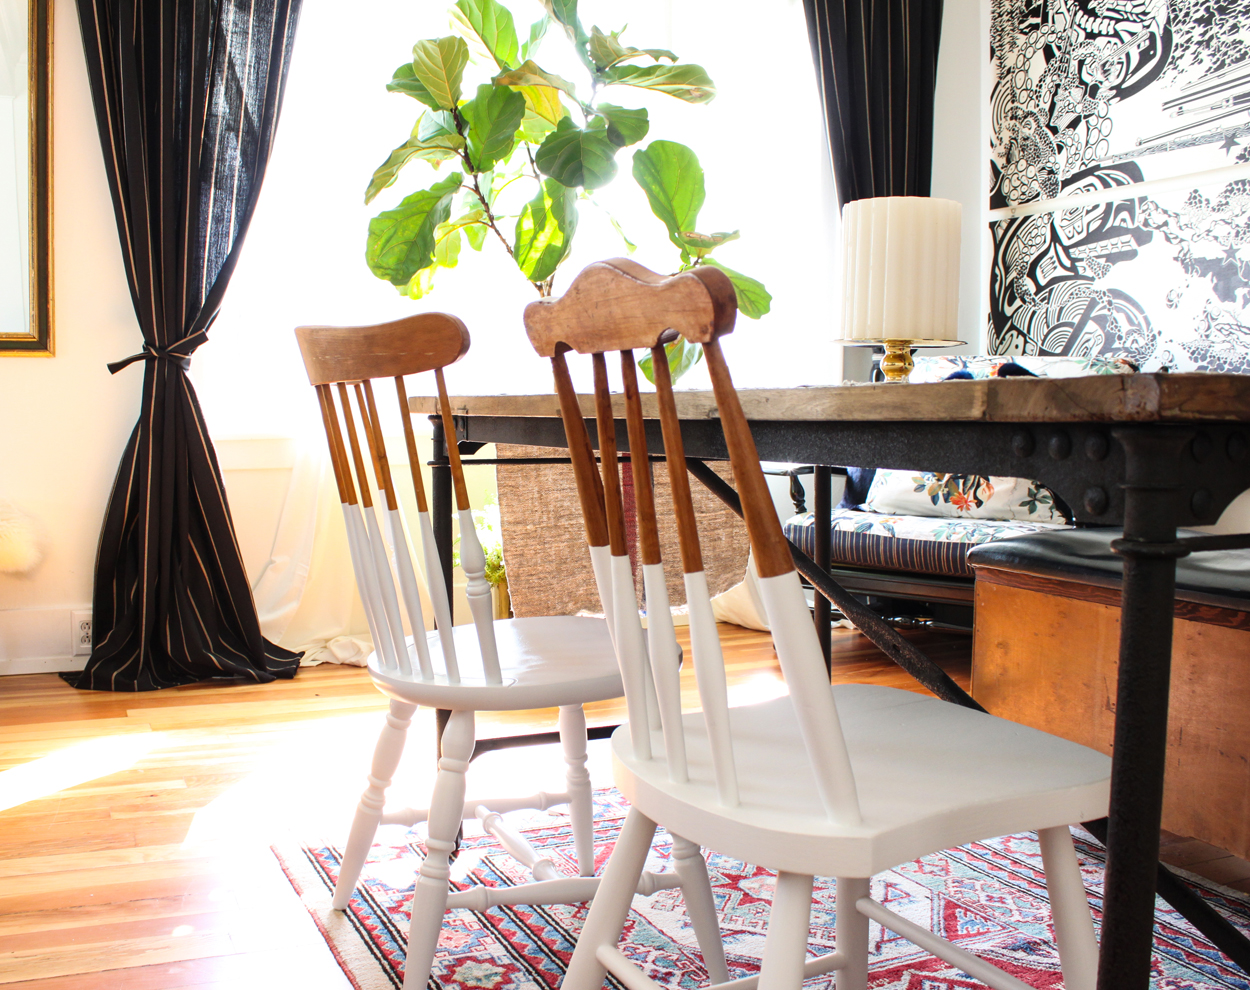 paint dip chairs at table.jpg